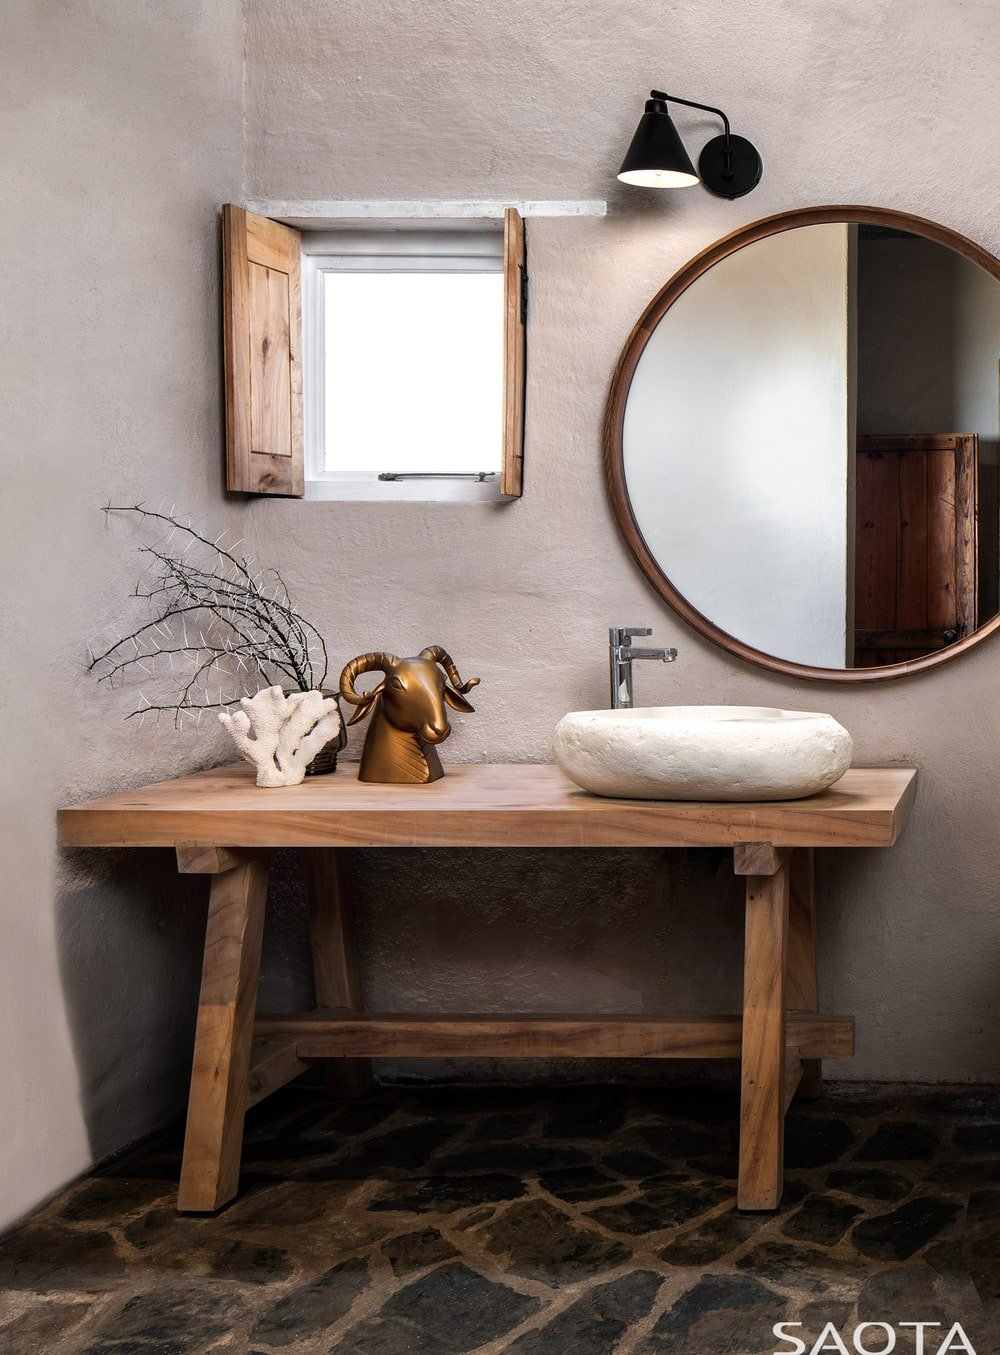 This is a close look at the rustic bathroom with a wooden table for the vanity to support the sink paired with a small window and a large mirror.